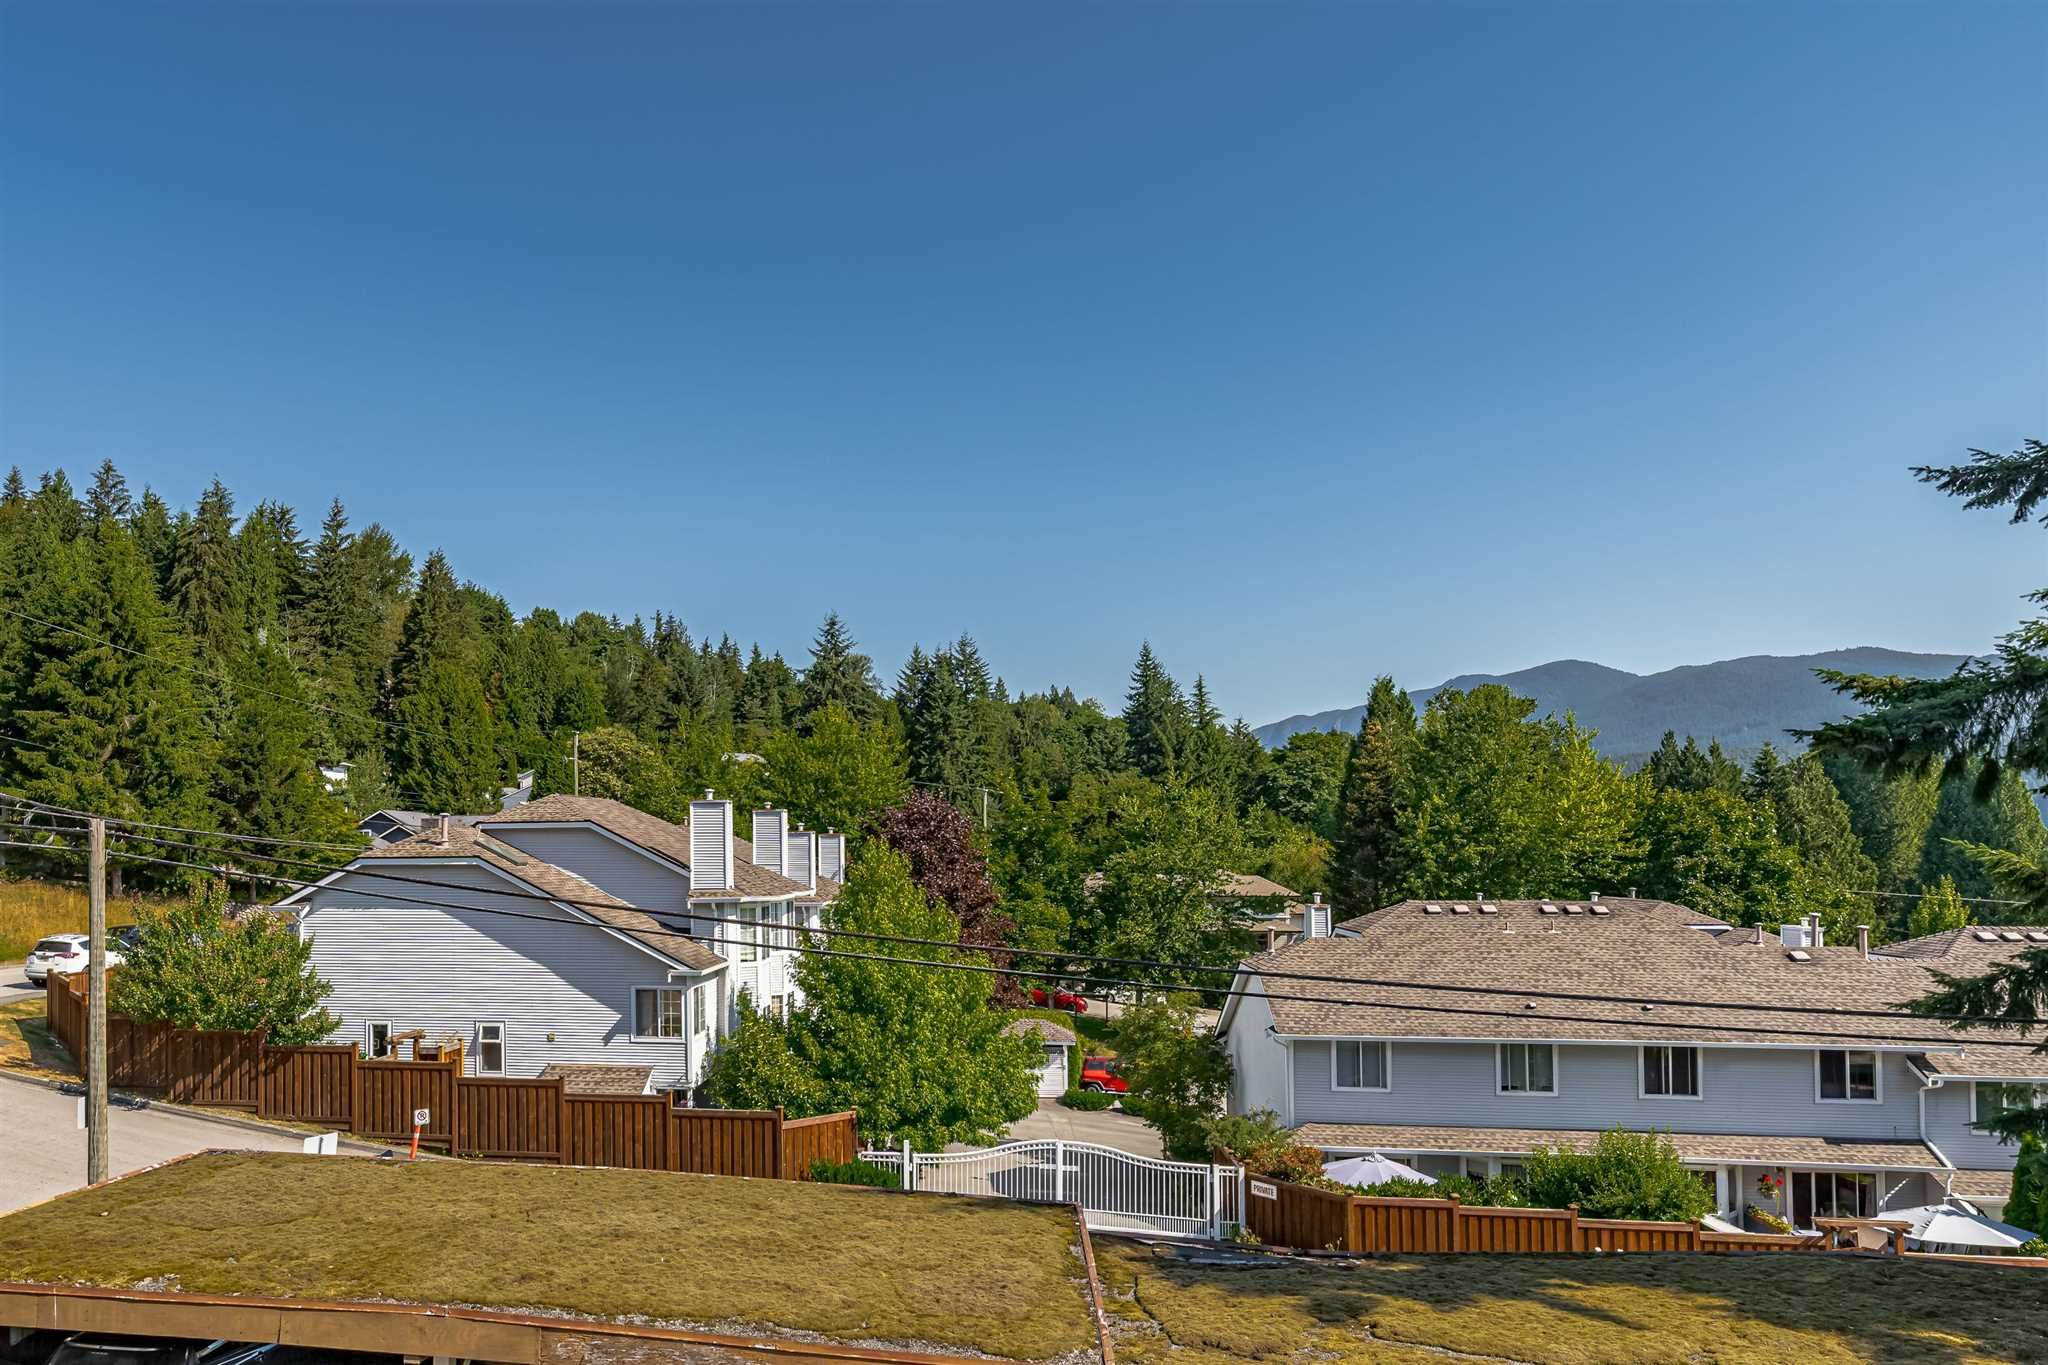 Photo 20: Photos: 57 2002 ST JOHNS Street in Port Moody: Port Moody Centre Condo for sale : MLS®# R2602252